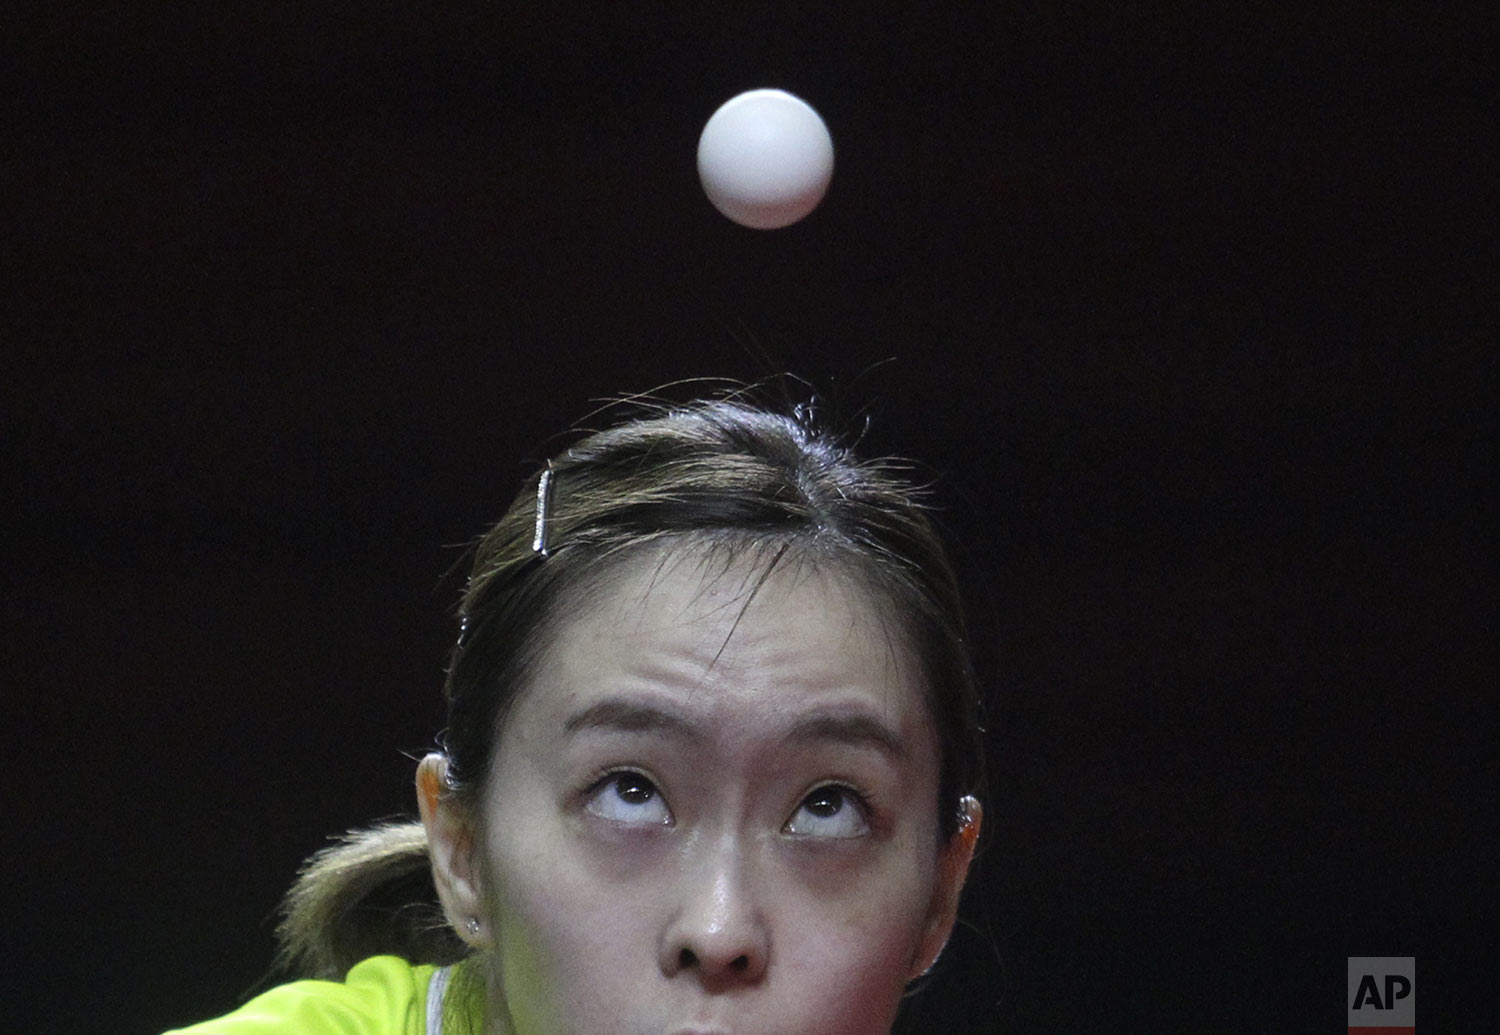 Japan's Kasumi Ishikawa plays against China's Chen Meng during their women's team table tennis final match at the ITTF-ATTU Asian Table Tennis Championships at Amongrogo stadium in Yogyakarta, Central Java, Indonesia, Tuesday, Sept. 17, 2019. (AP Photo/Kalandra)